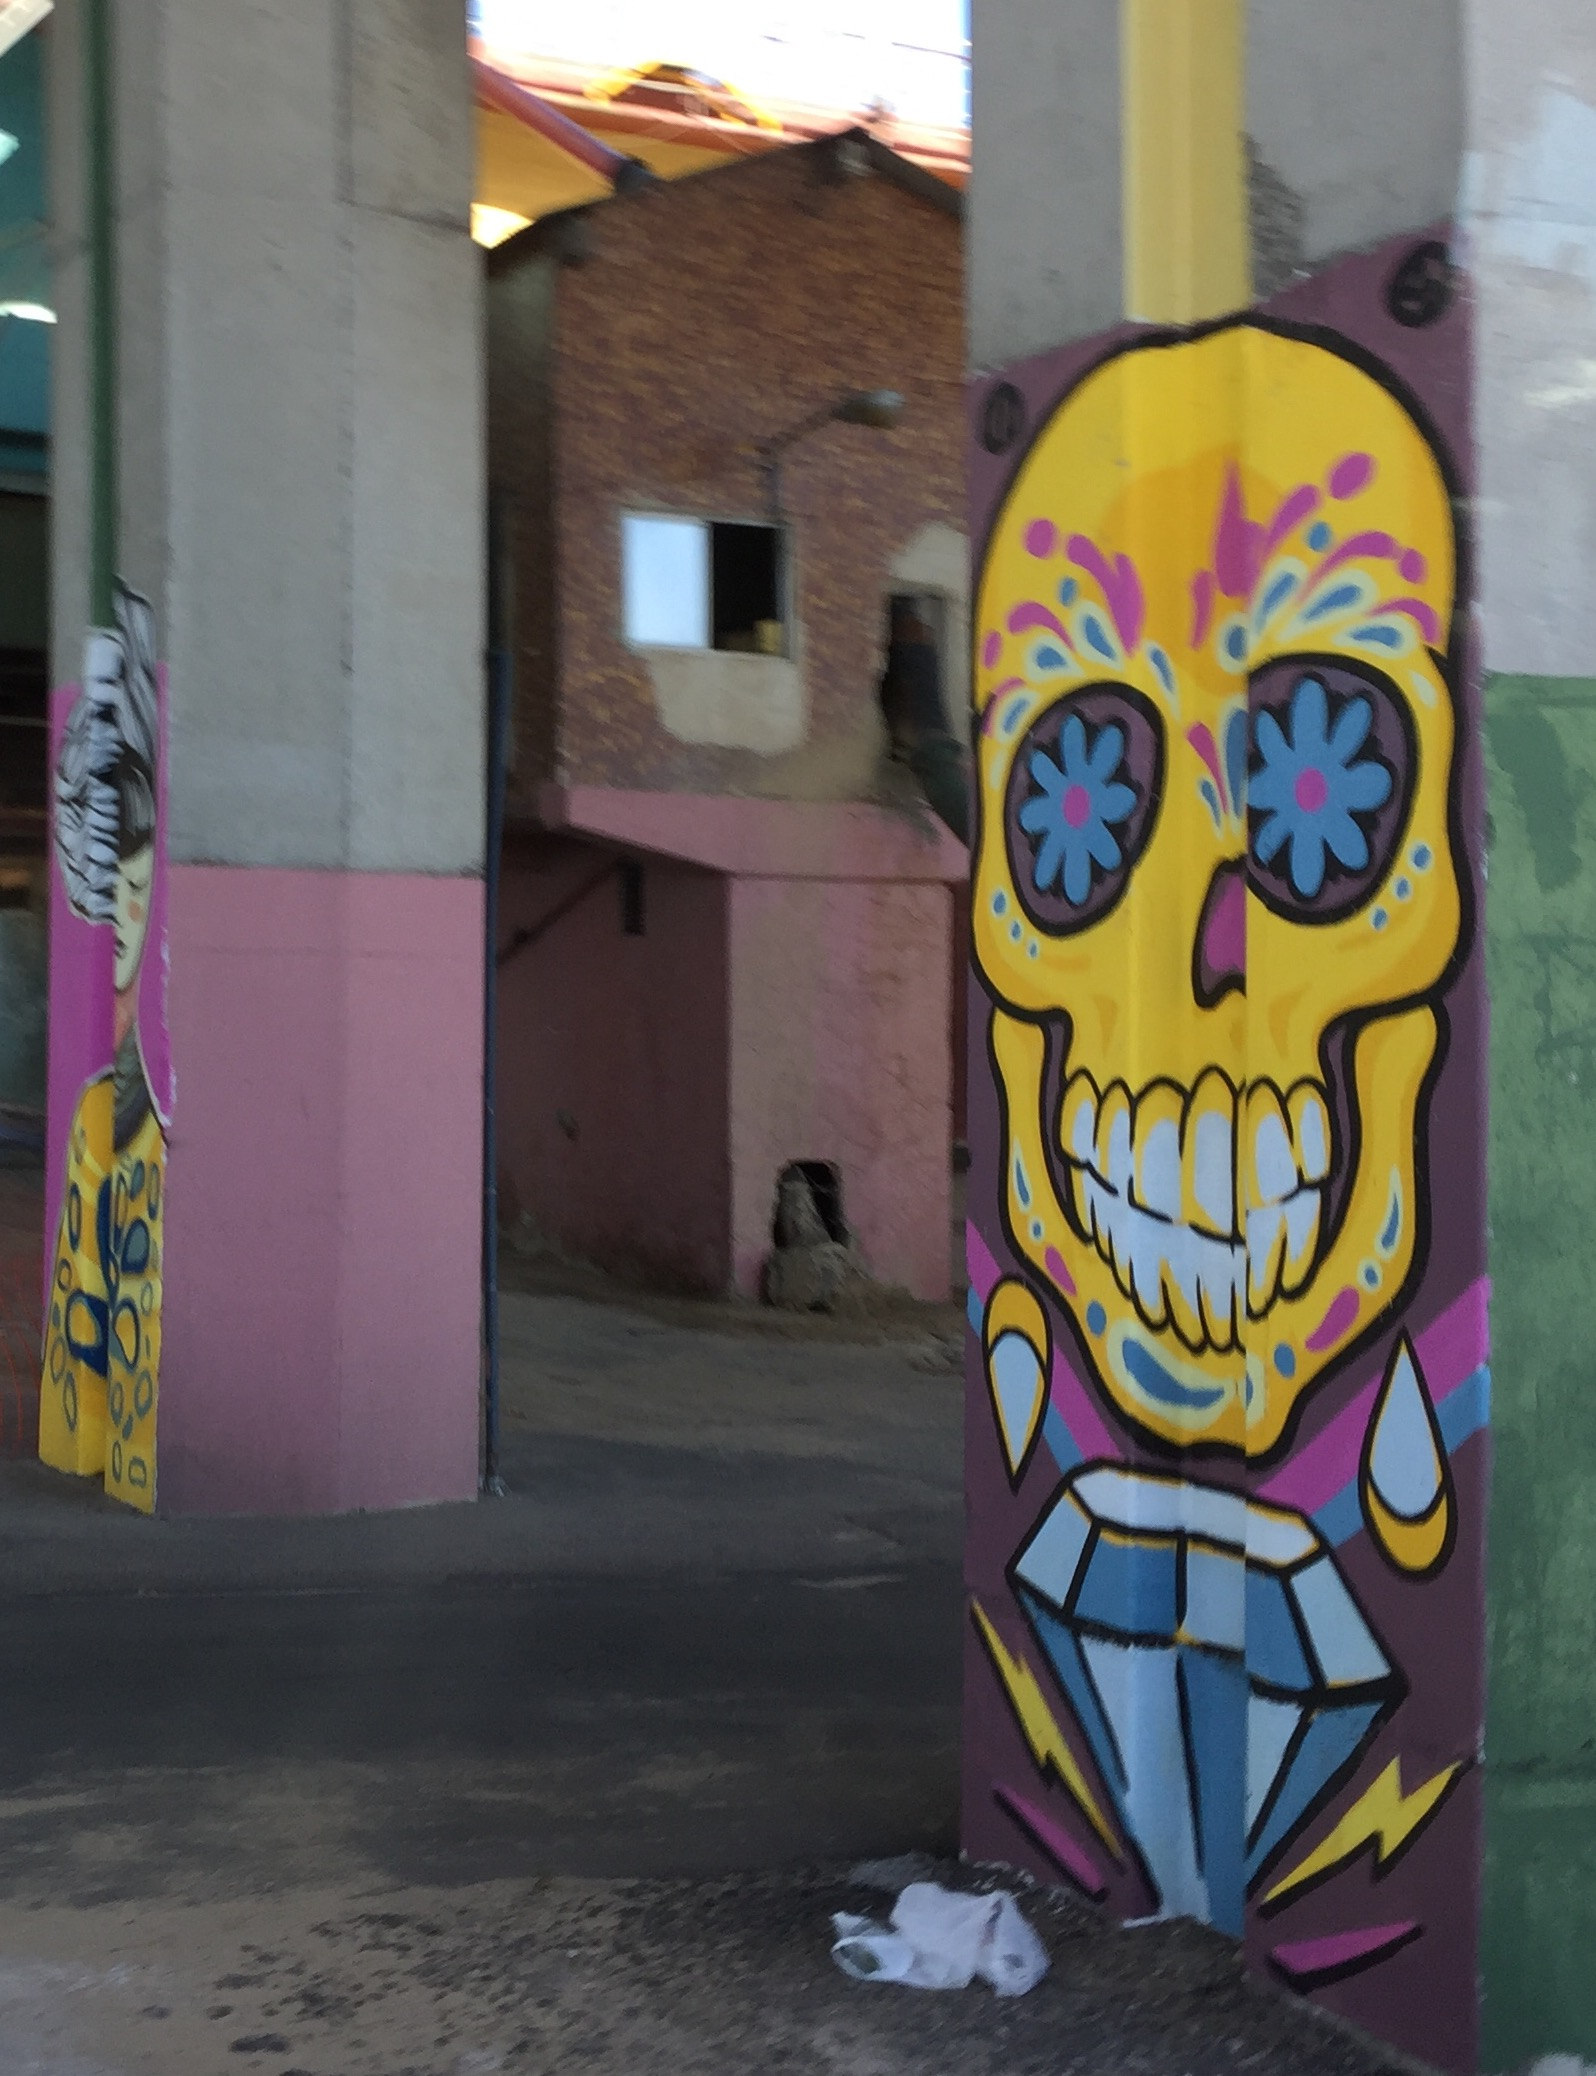 Street art is common in Buenos Aires and often has a political message.